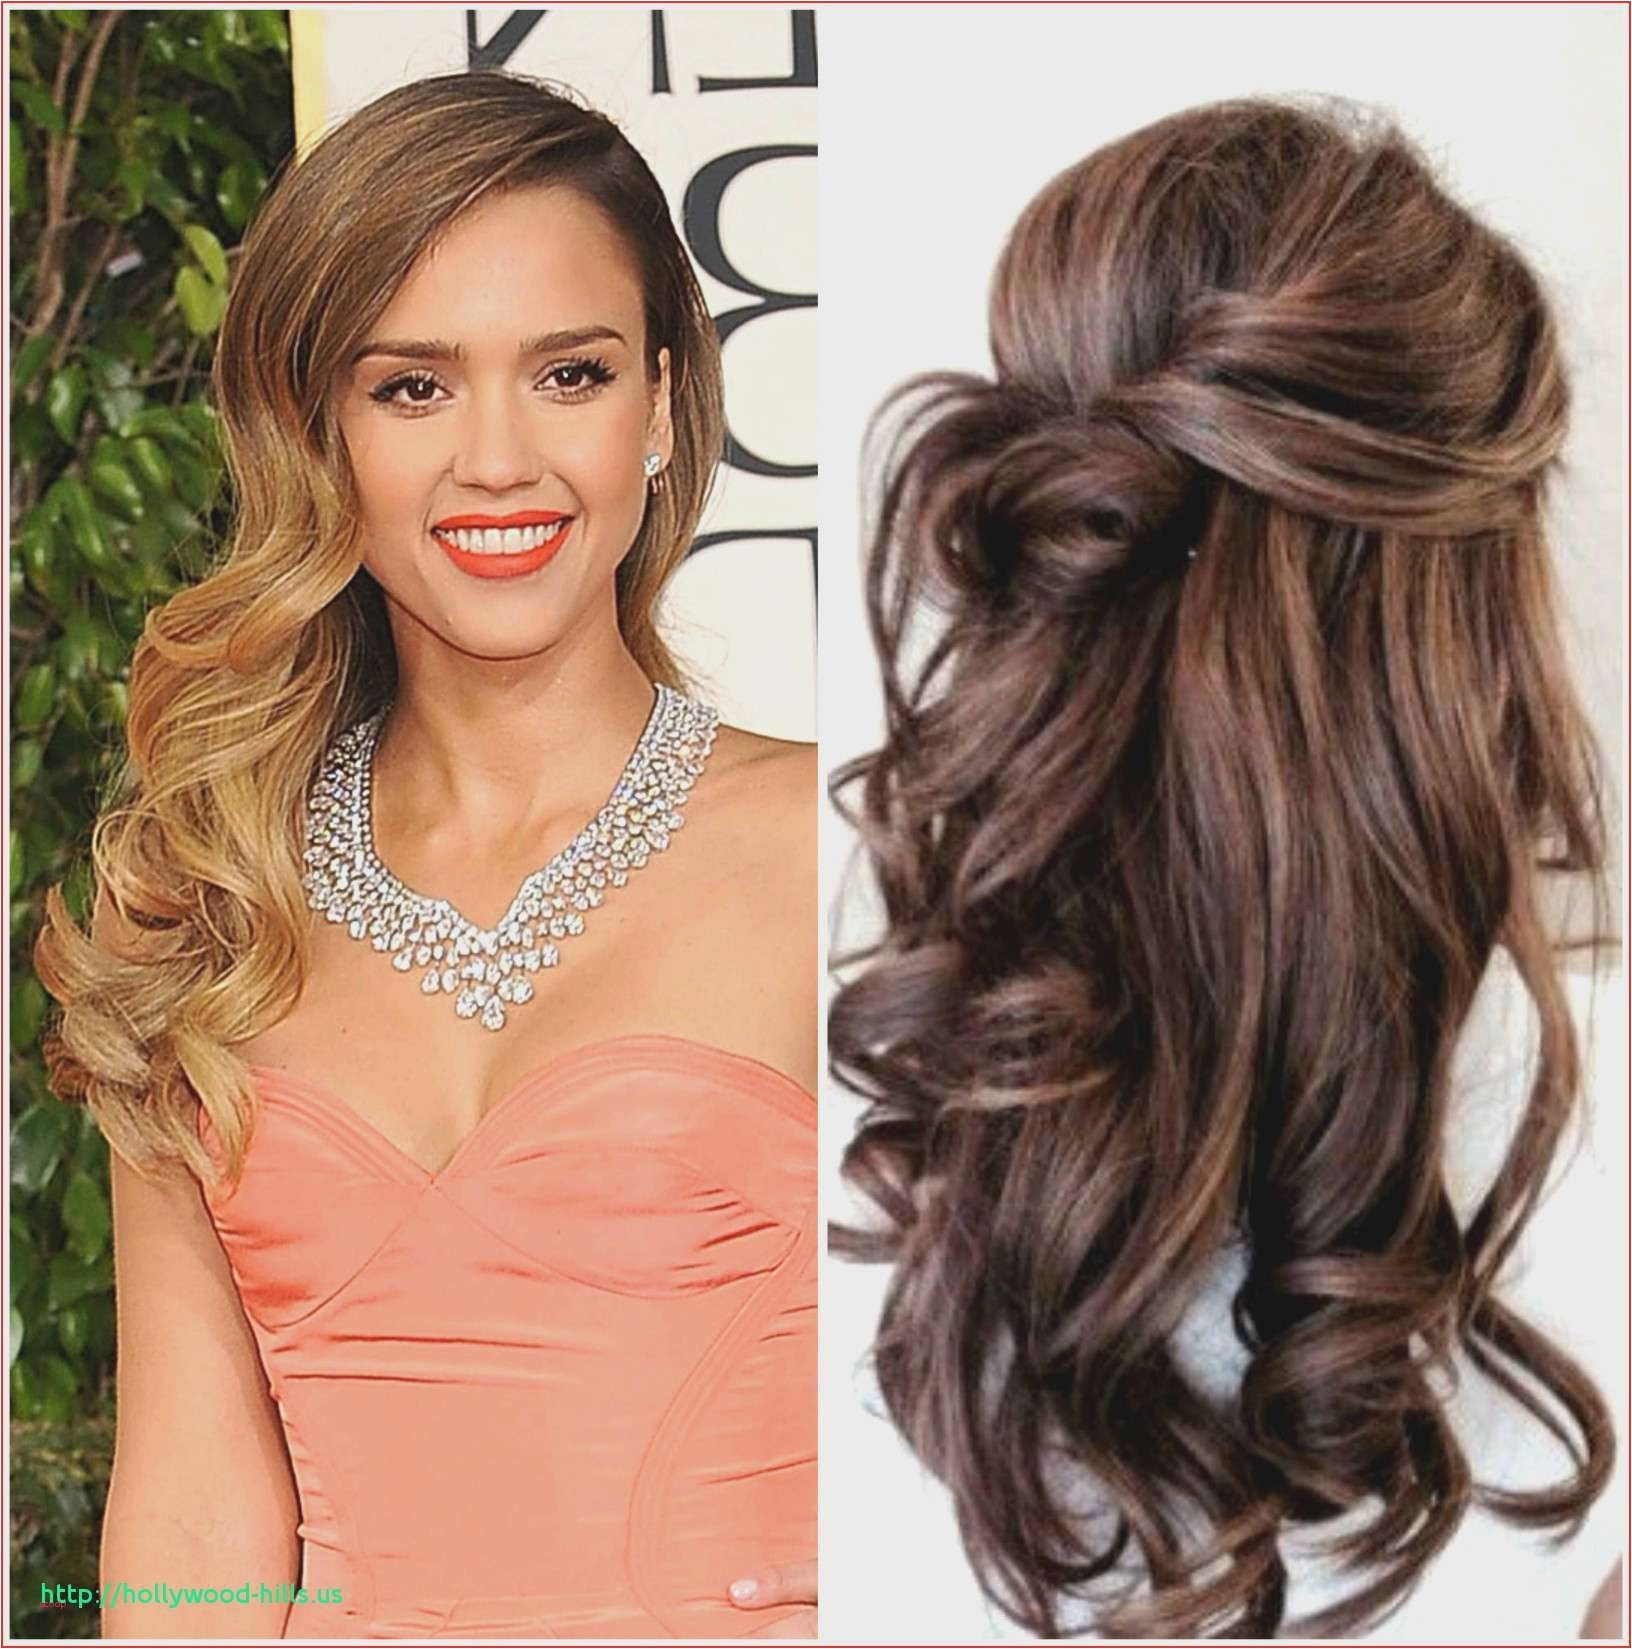 Cute Hairstyles for Women Elegant Fresh Easy Hairstyle for Long Thin Hair Newhairstylegallery with Cute